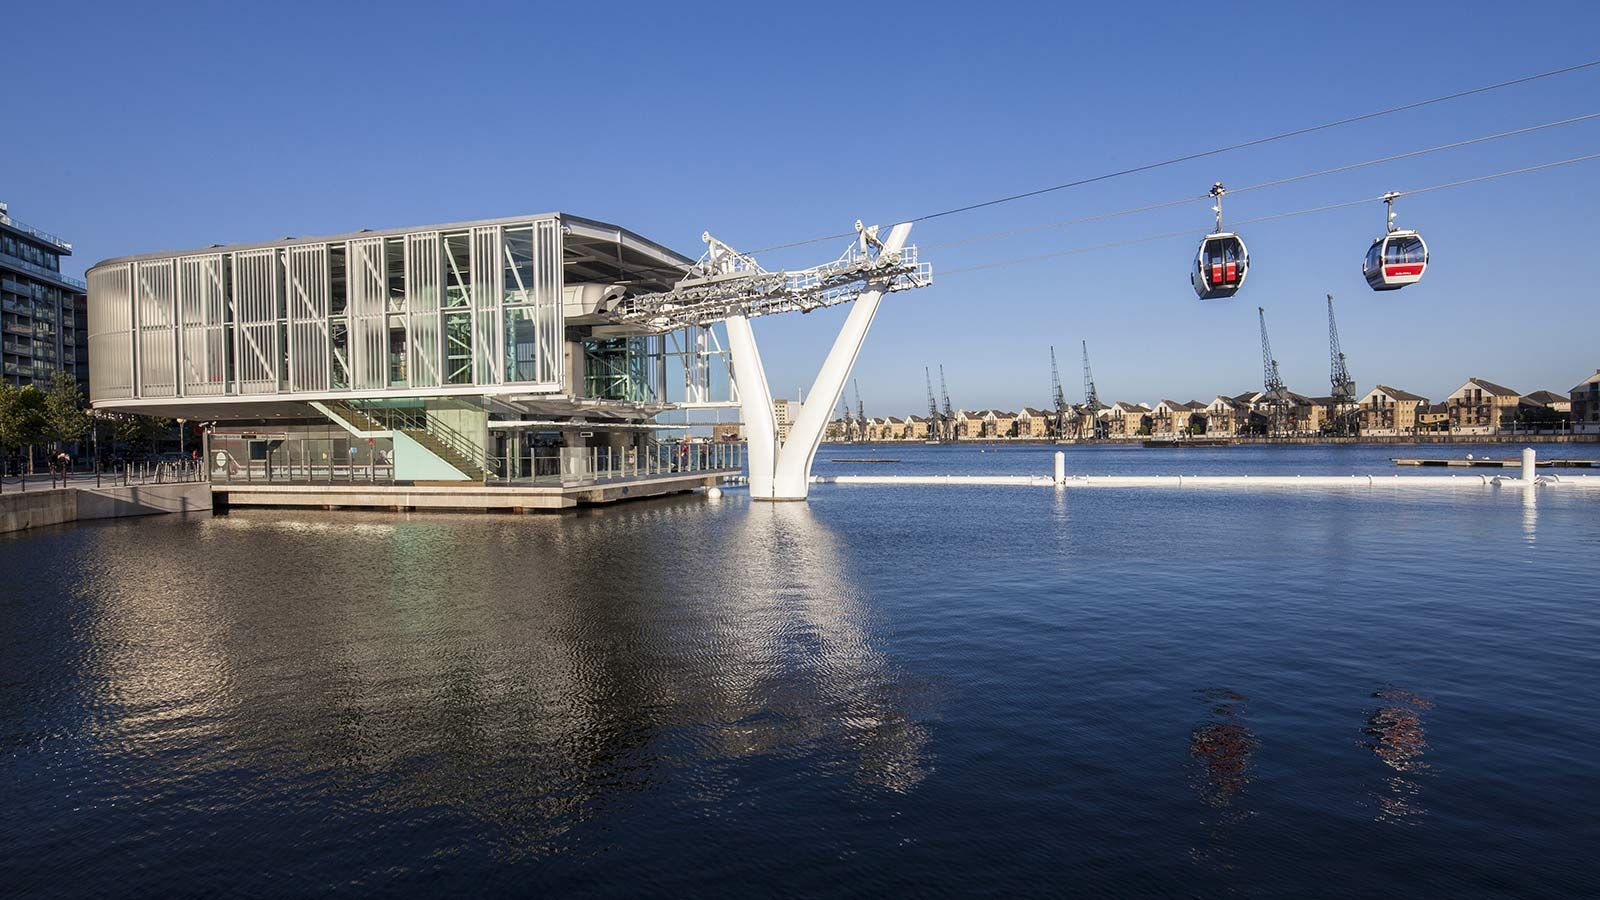 Emirates Air Line Cable Car River View - Mace Group